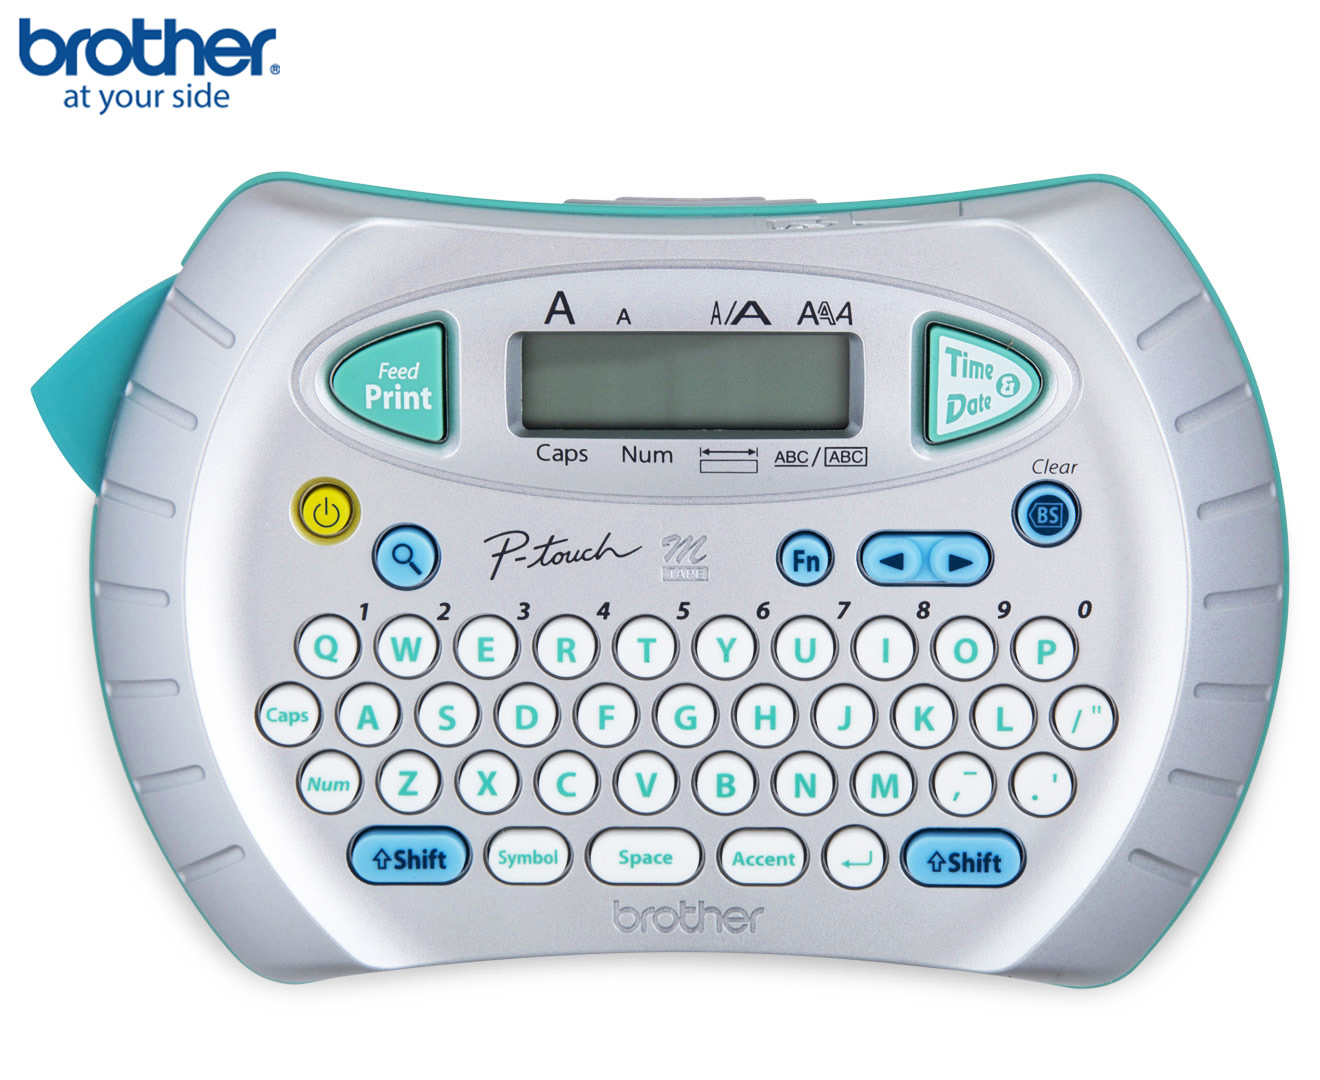 Brother PT-70 Electronic Label Maker - Silver | eBay